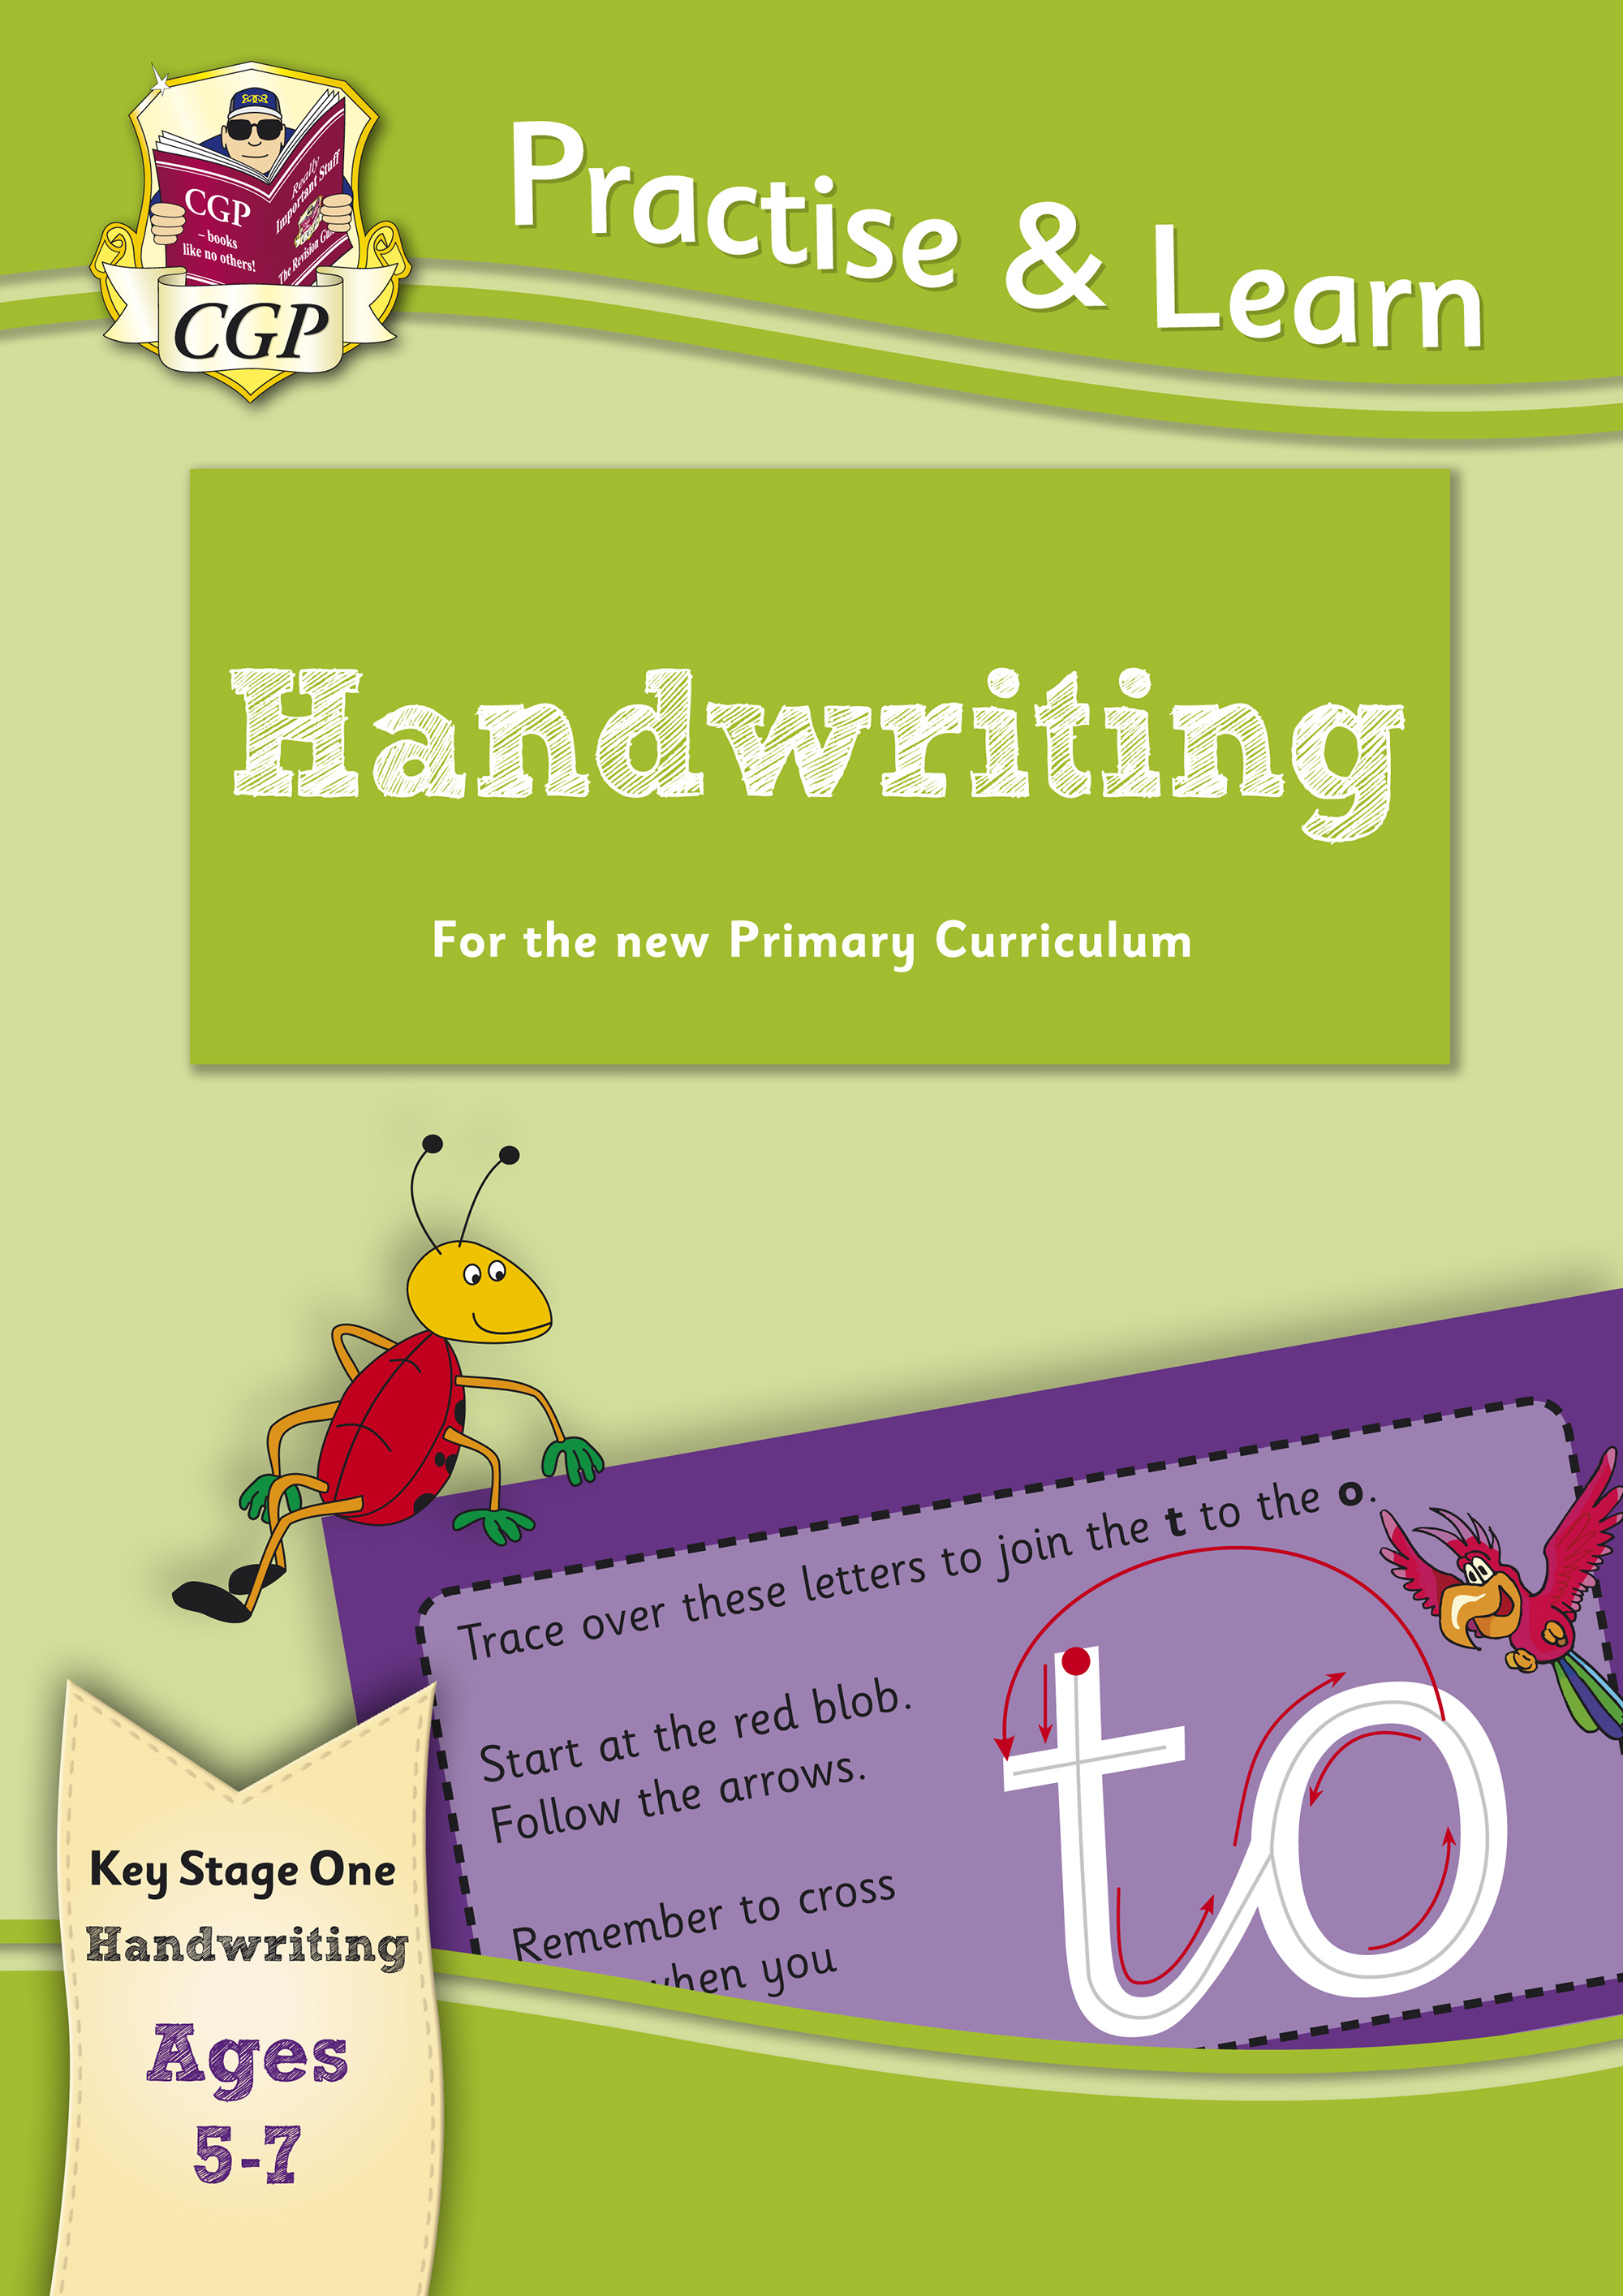 EPH12 - New Practise & Learn: Handwriting for Ages 5-7